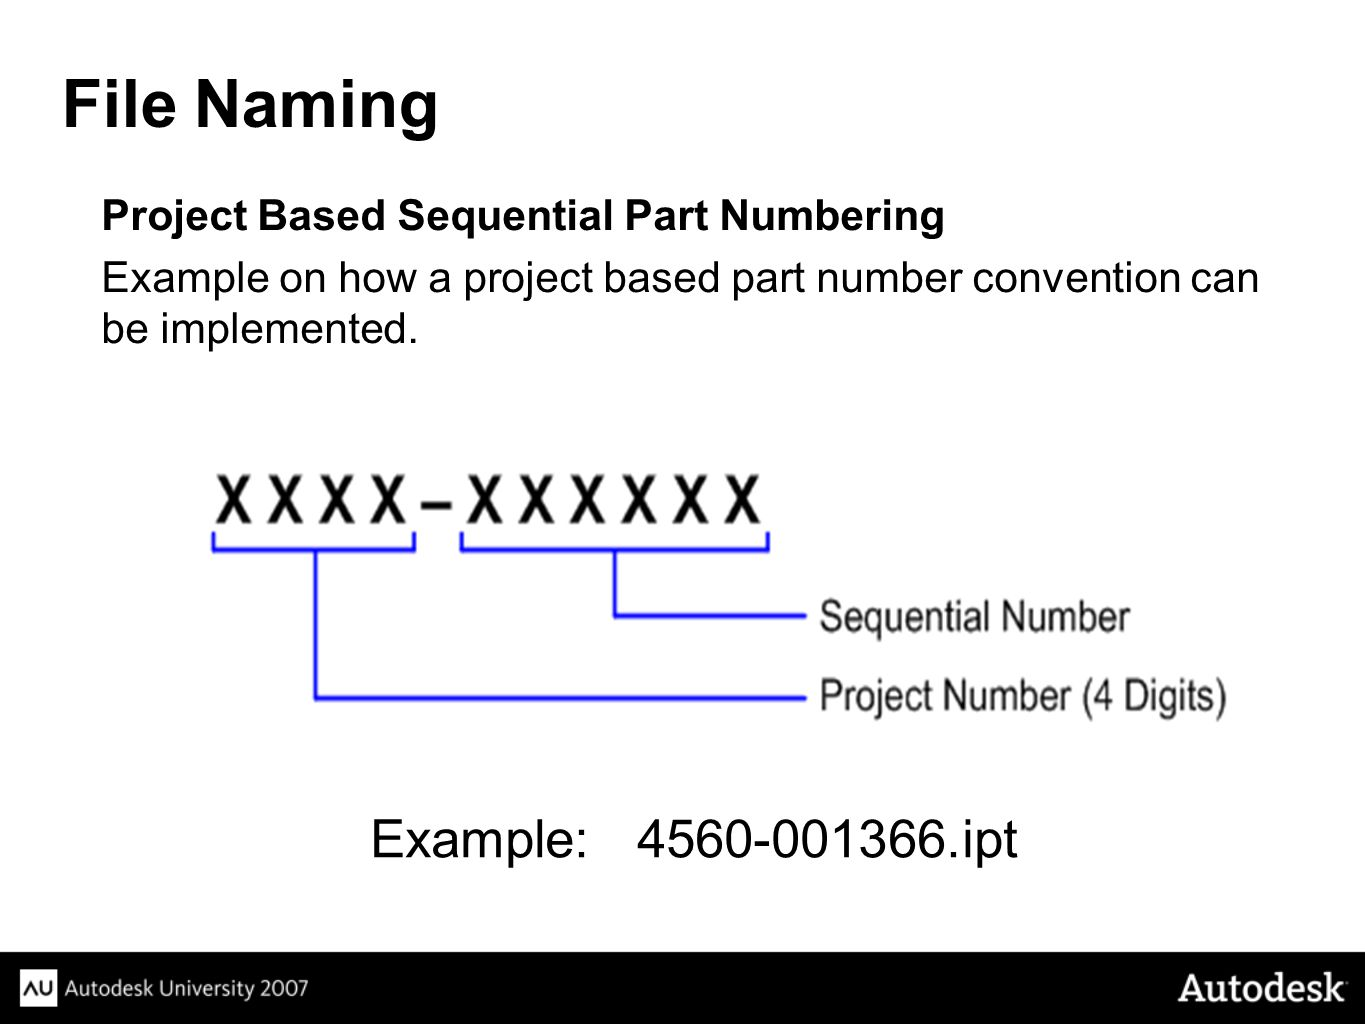 Project Based Sequential Part Numbering Example on how a project based part number convention can be implemented.